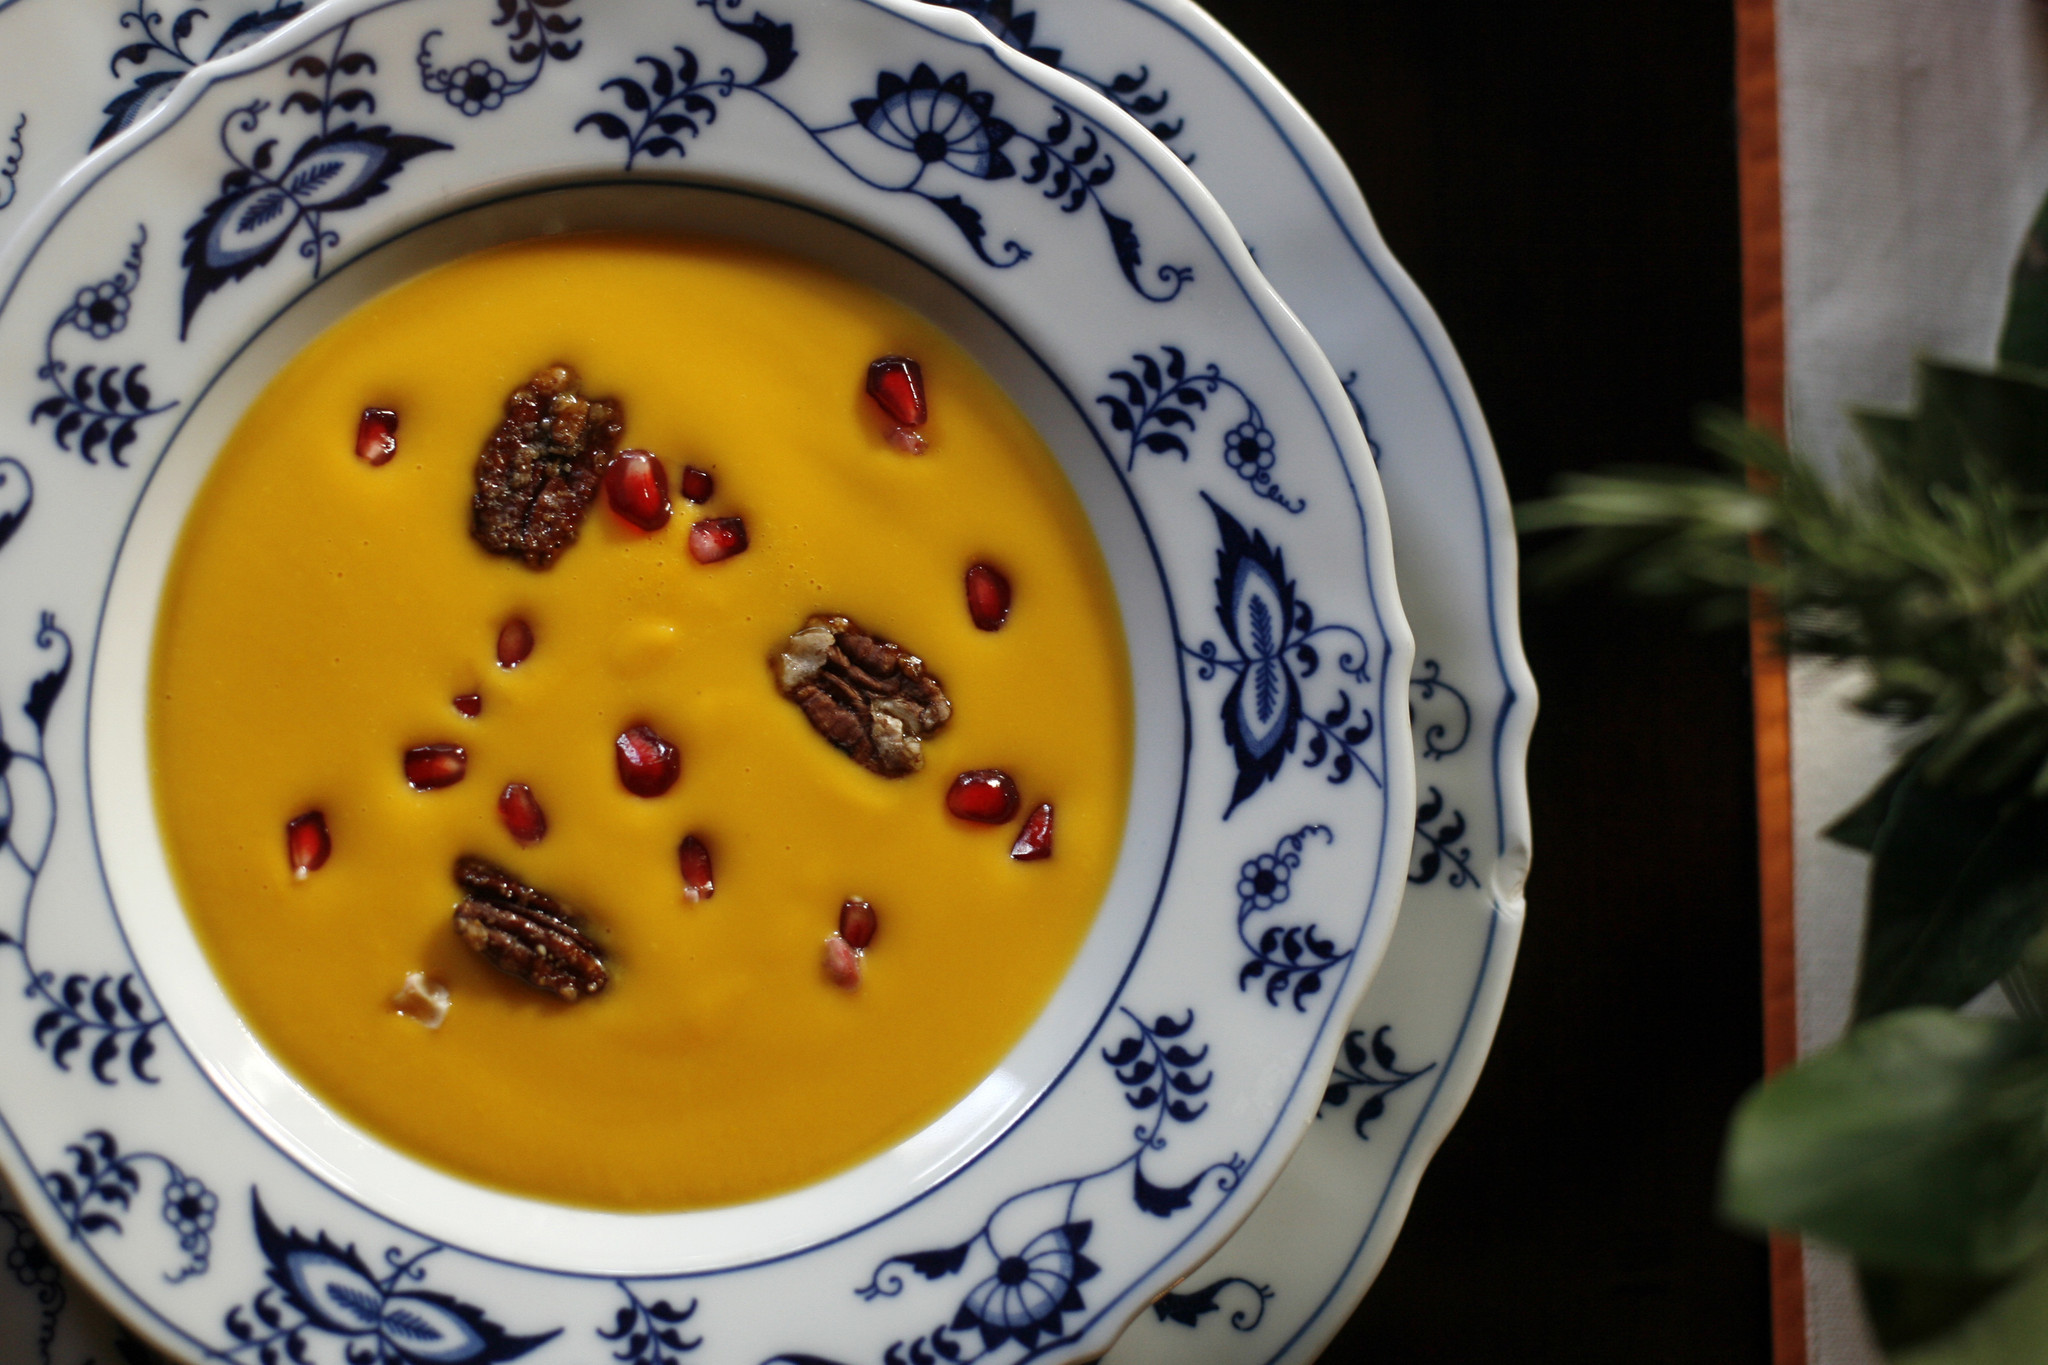 Photos: 97 great Thanksgiving recipes - Kabocha squash soup with pomegranate seeds and spicy candied pecans